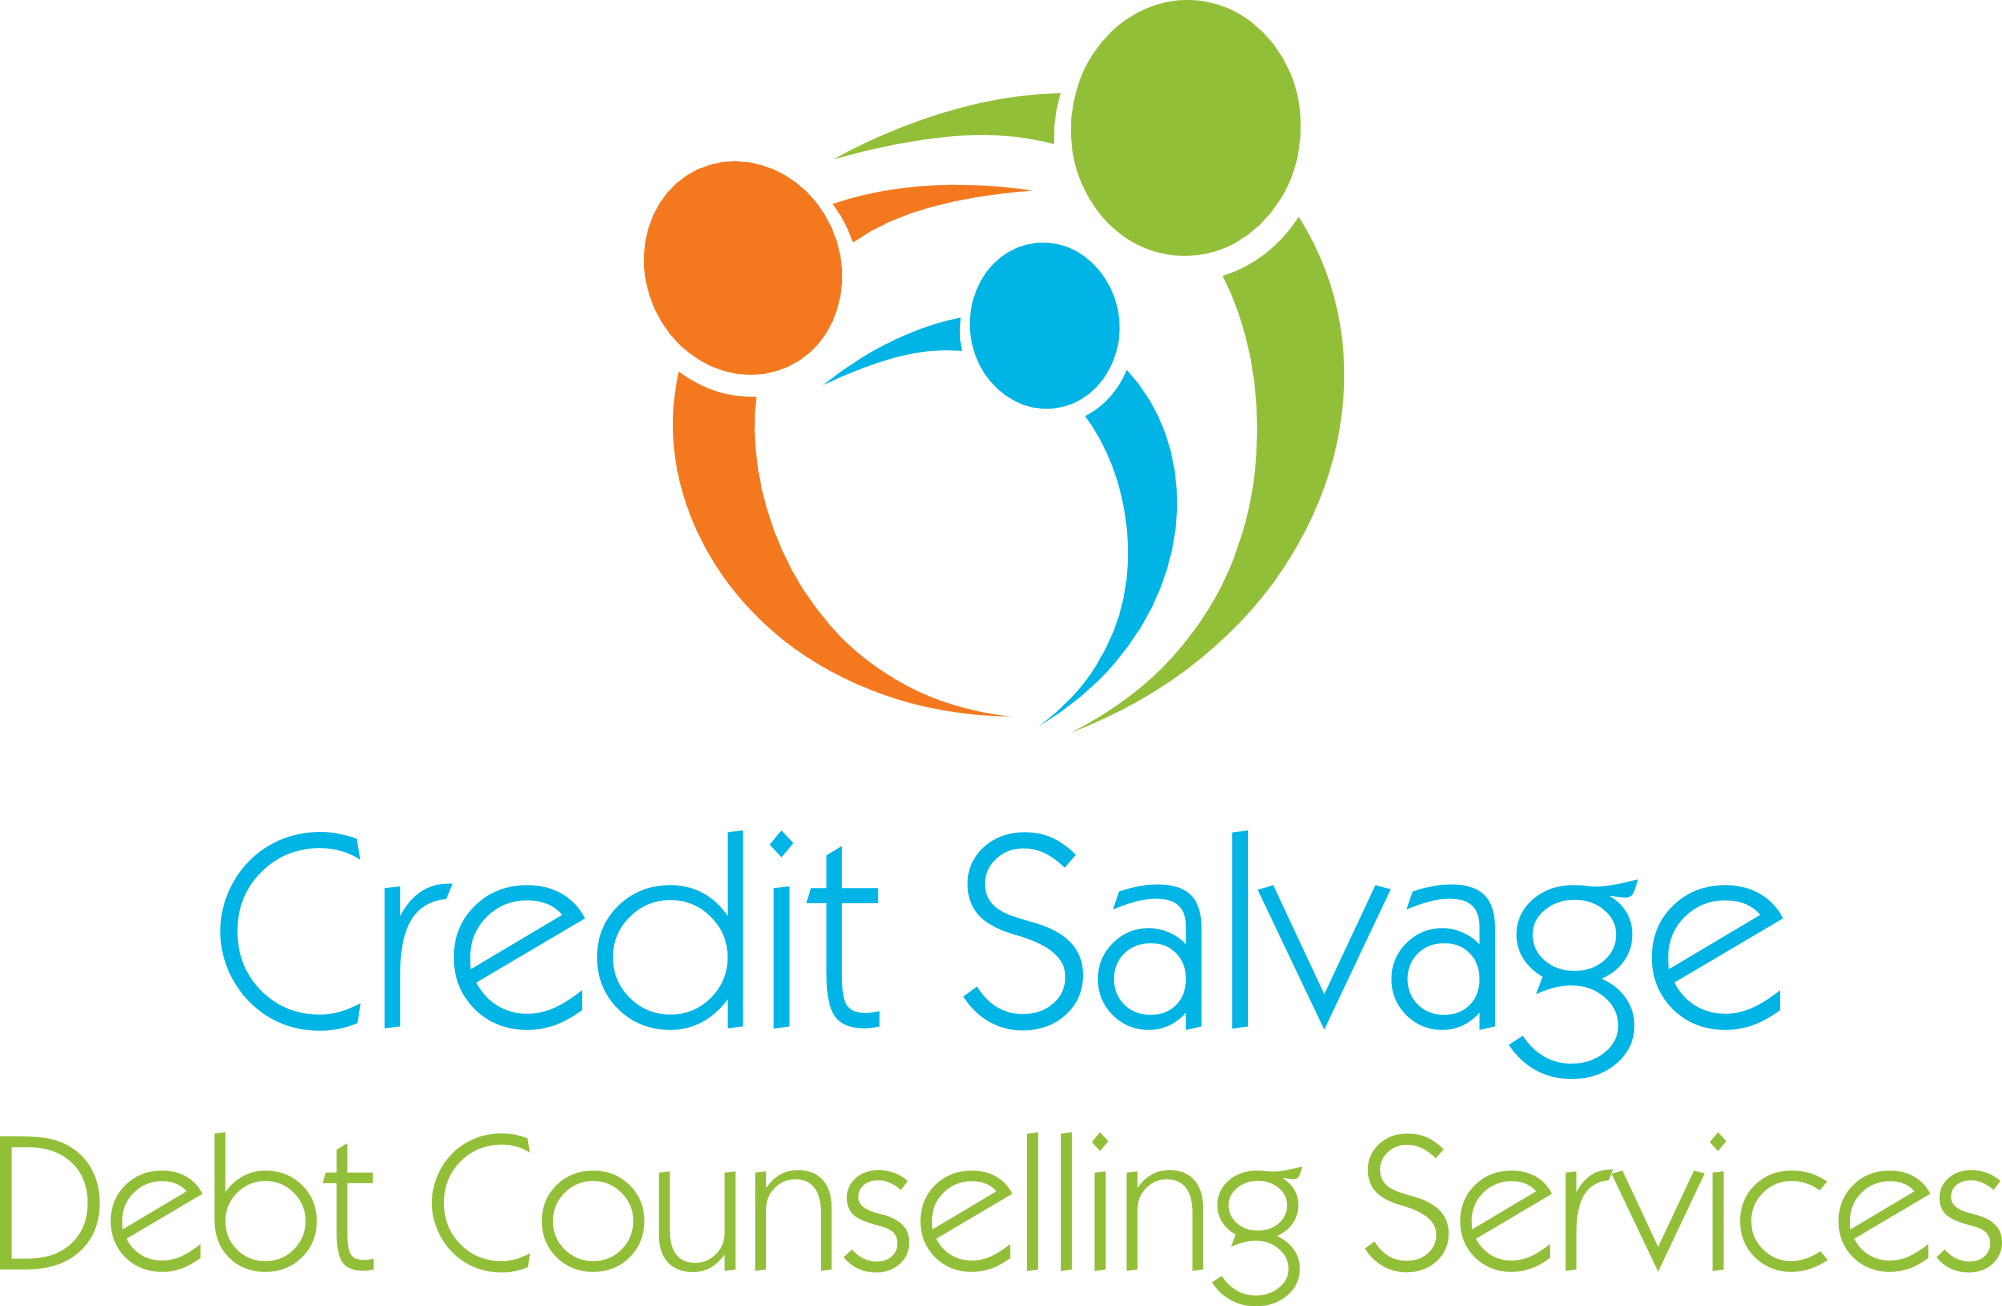 Credit Salvage Debt Counselling